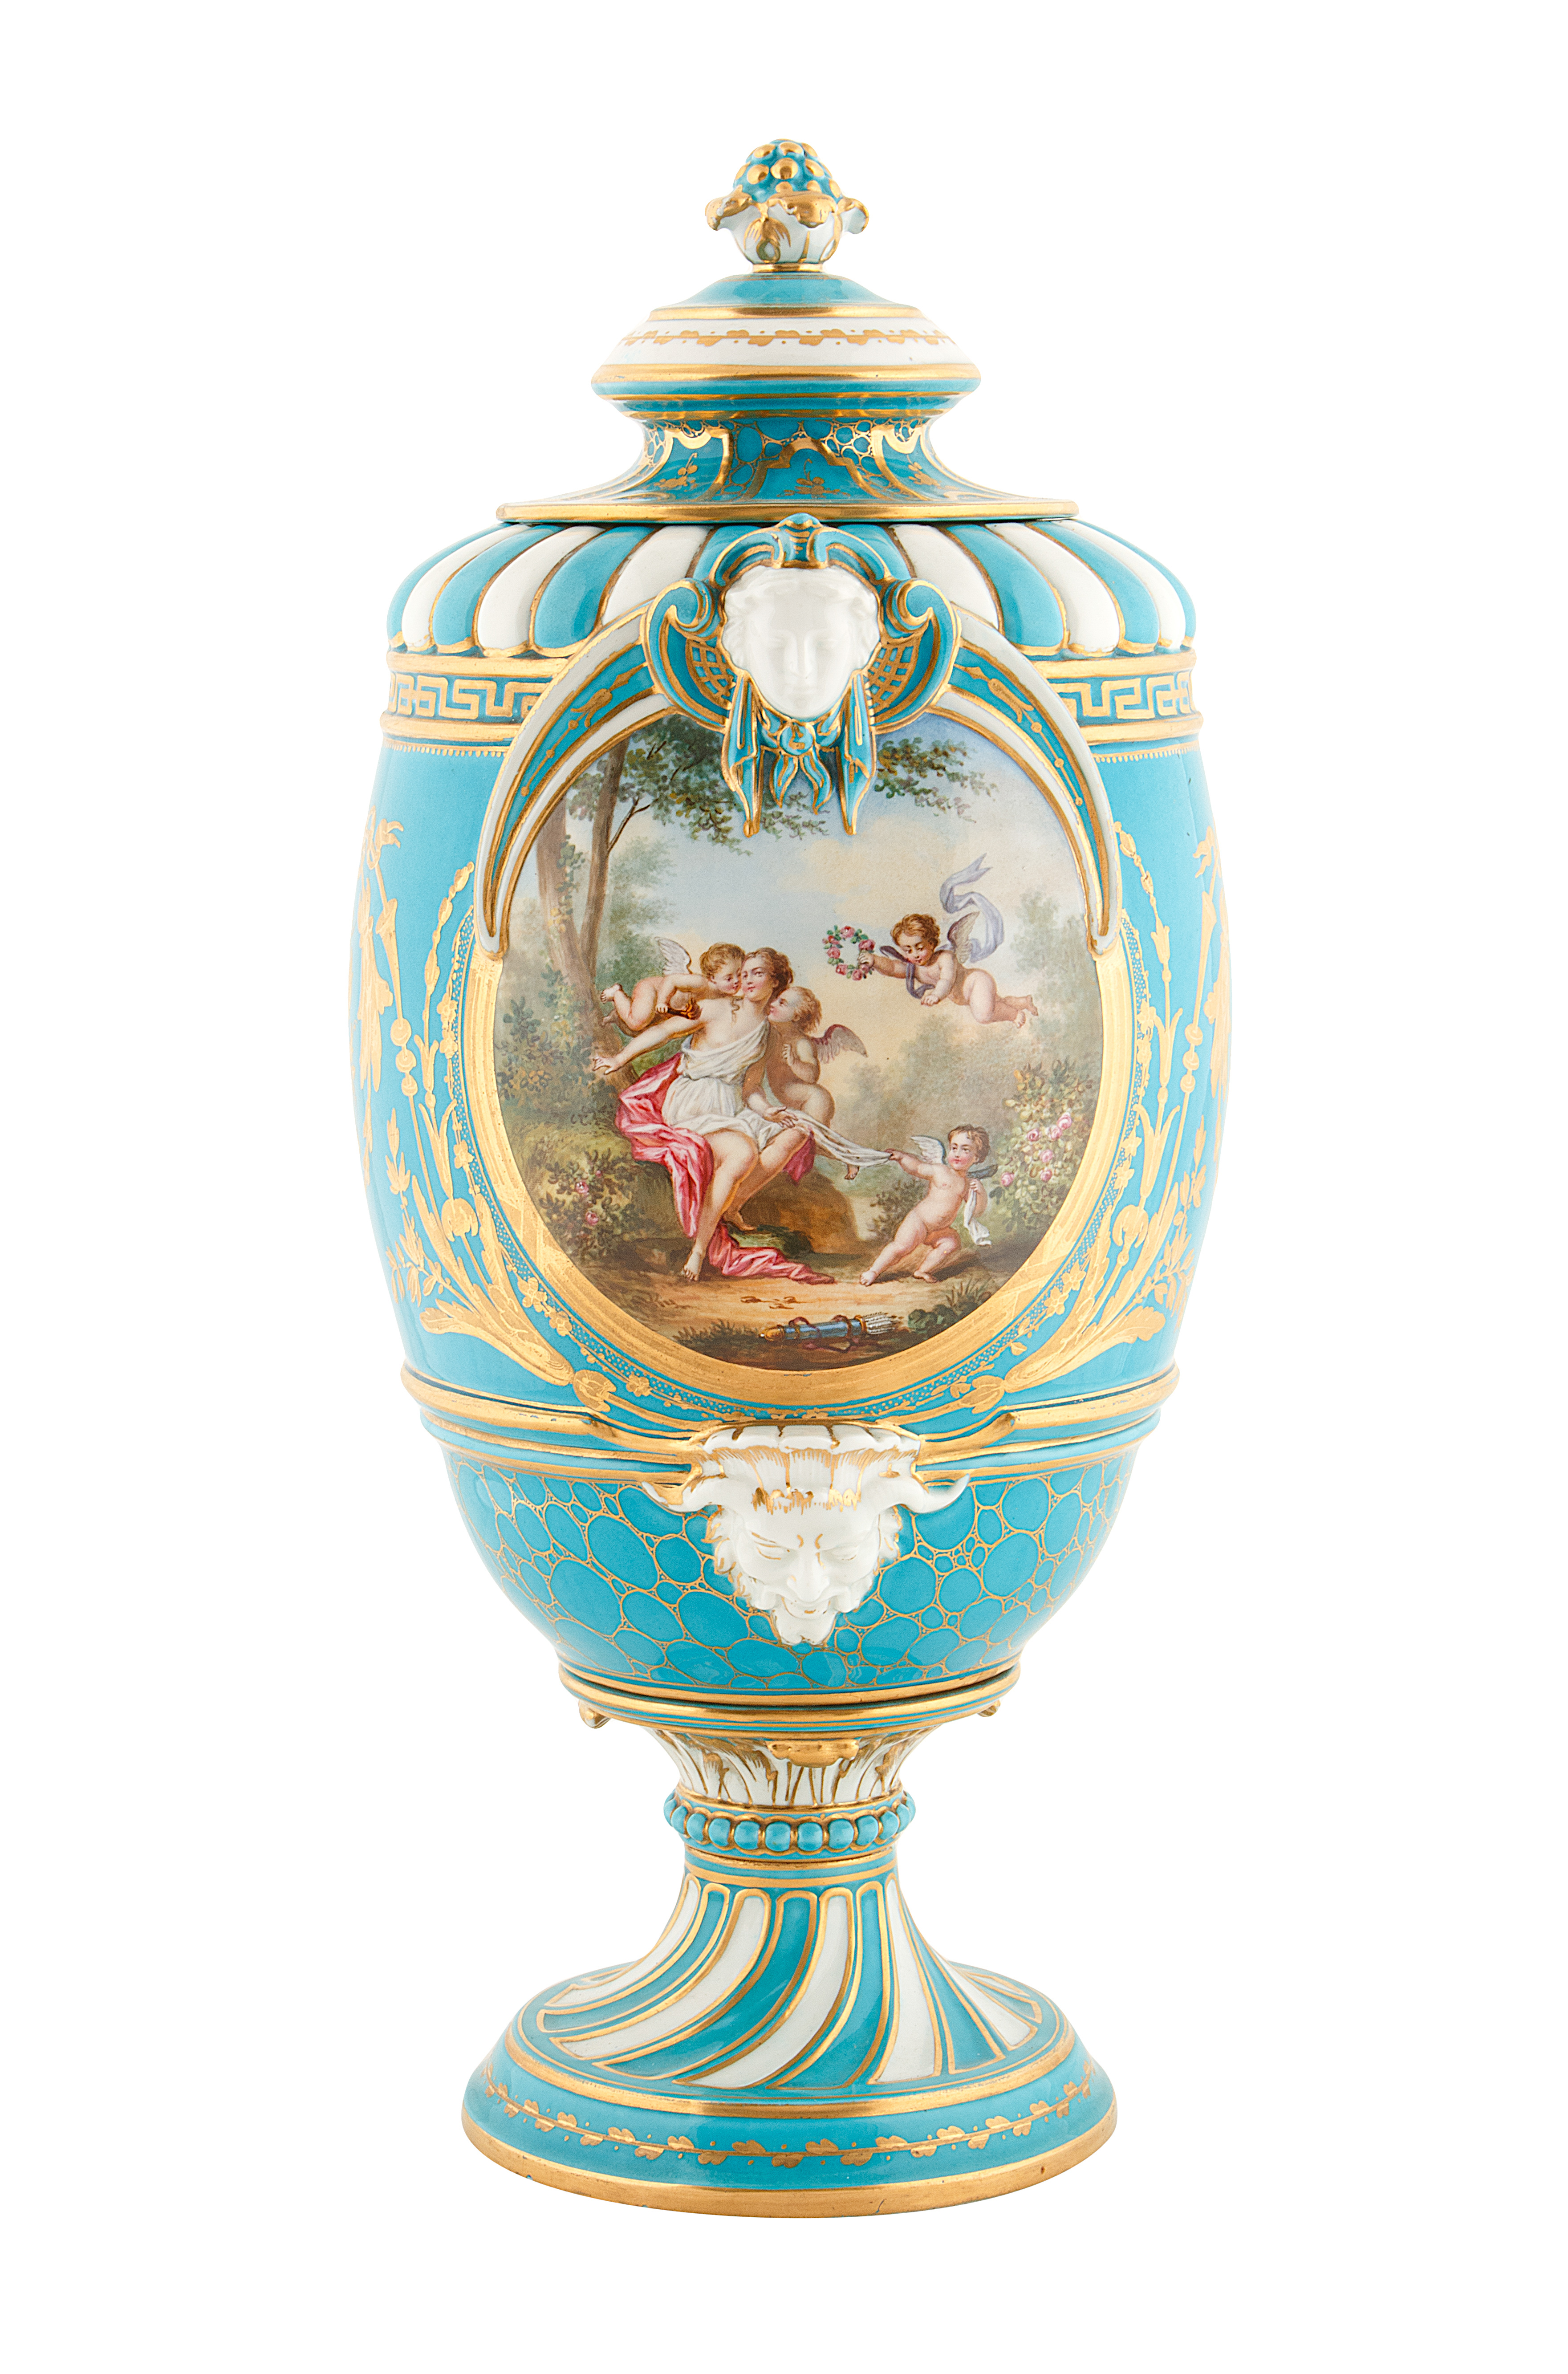 19TH CENTURY FRENCH SEVRE-STYLE PORCELAIN URNS - Image 2 of 6